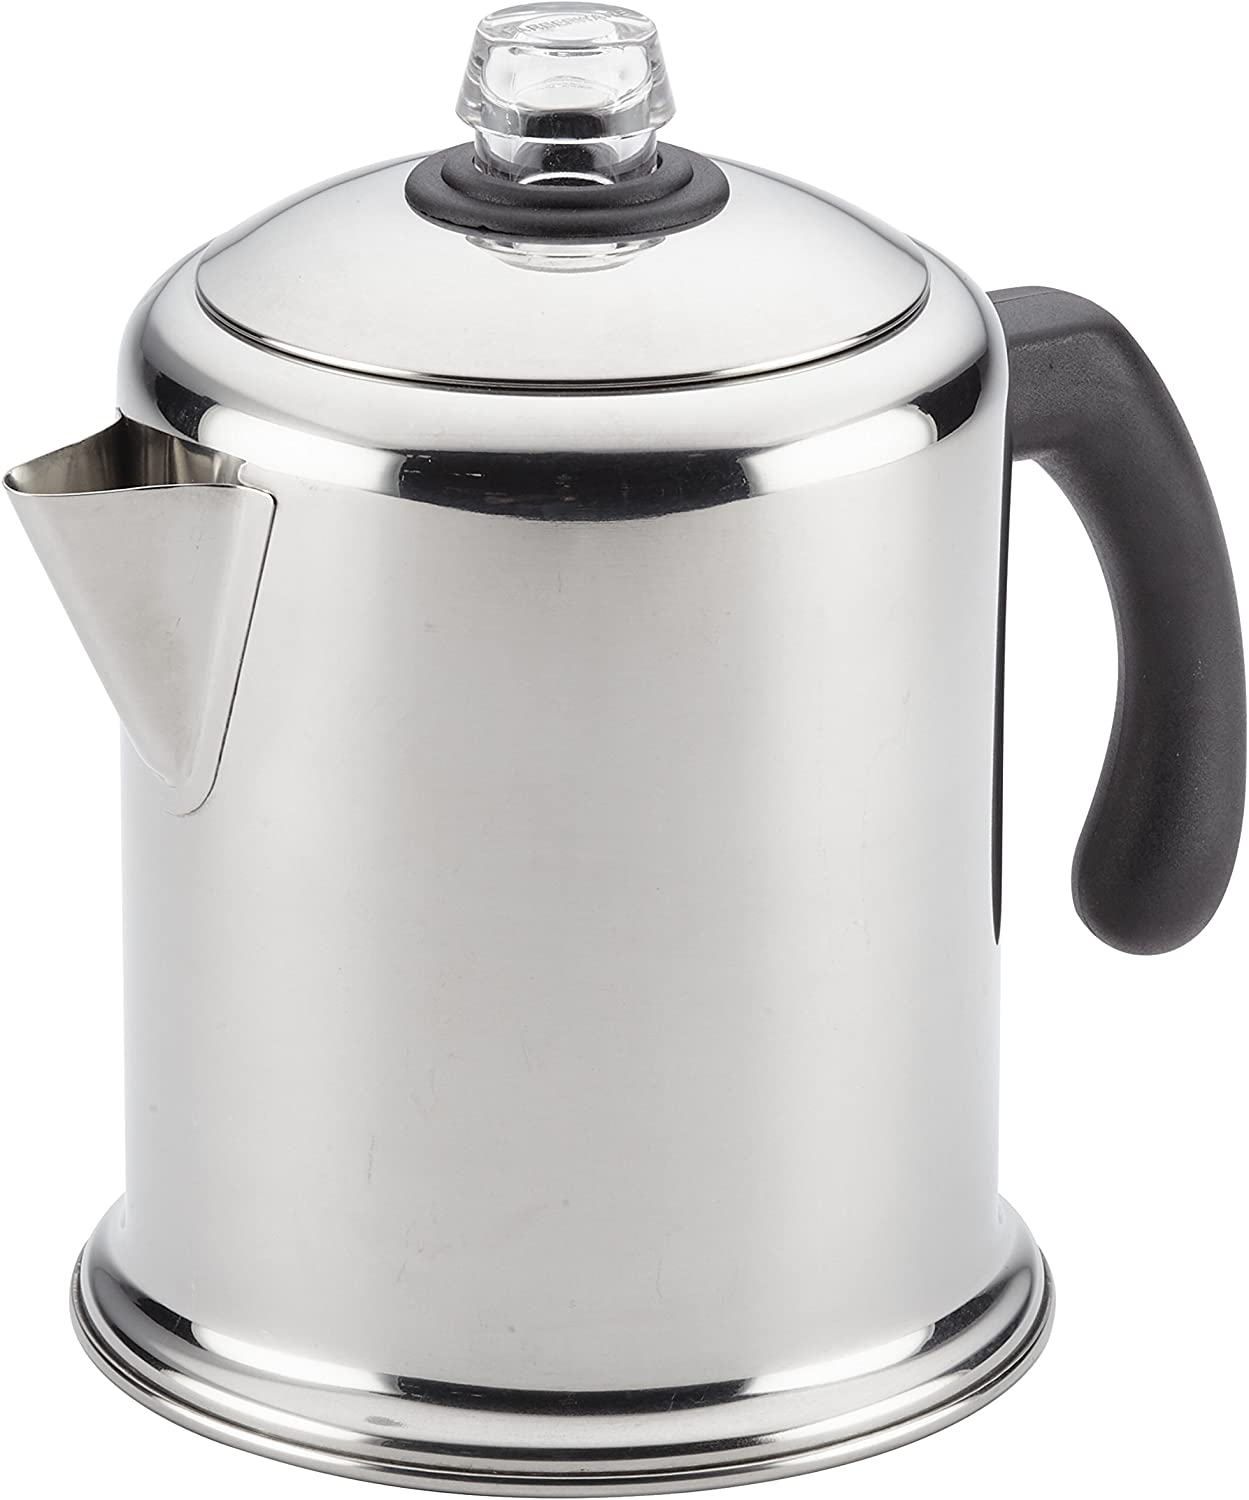 Farberware 47053 Classic Stainless Steel Yosemite Coffee Percolator, 12-Cup